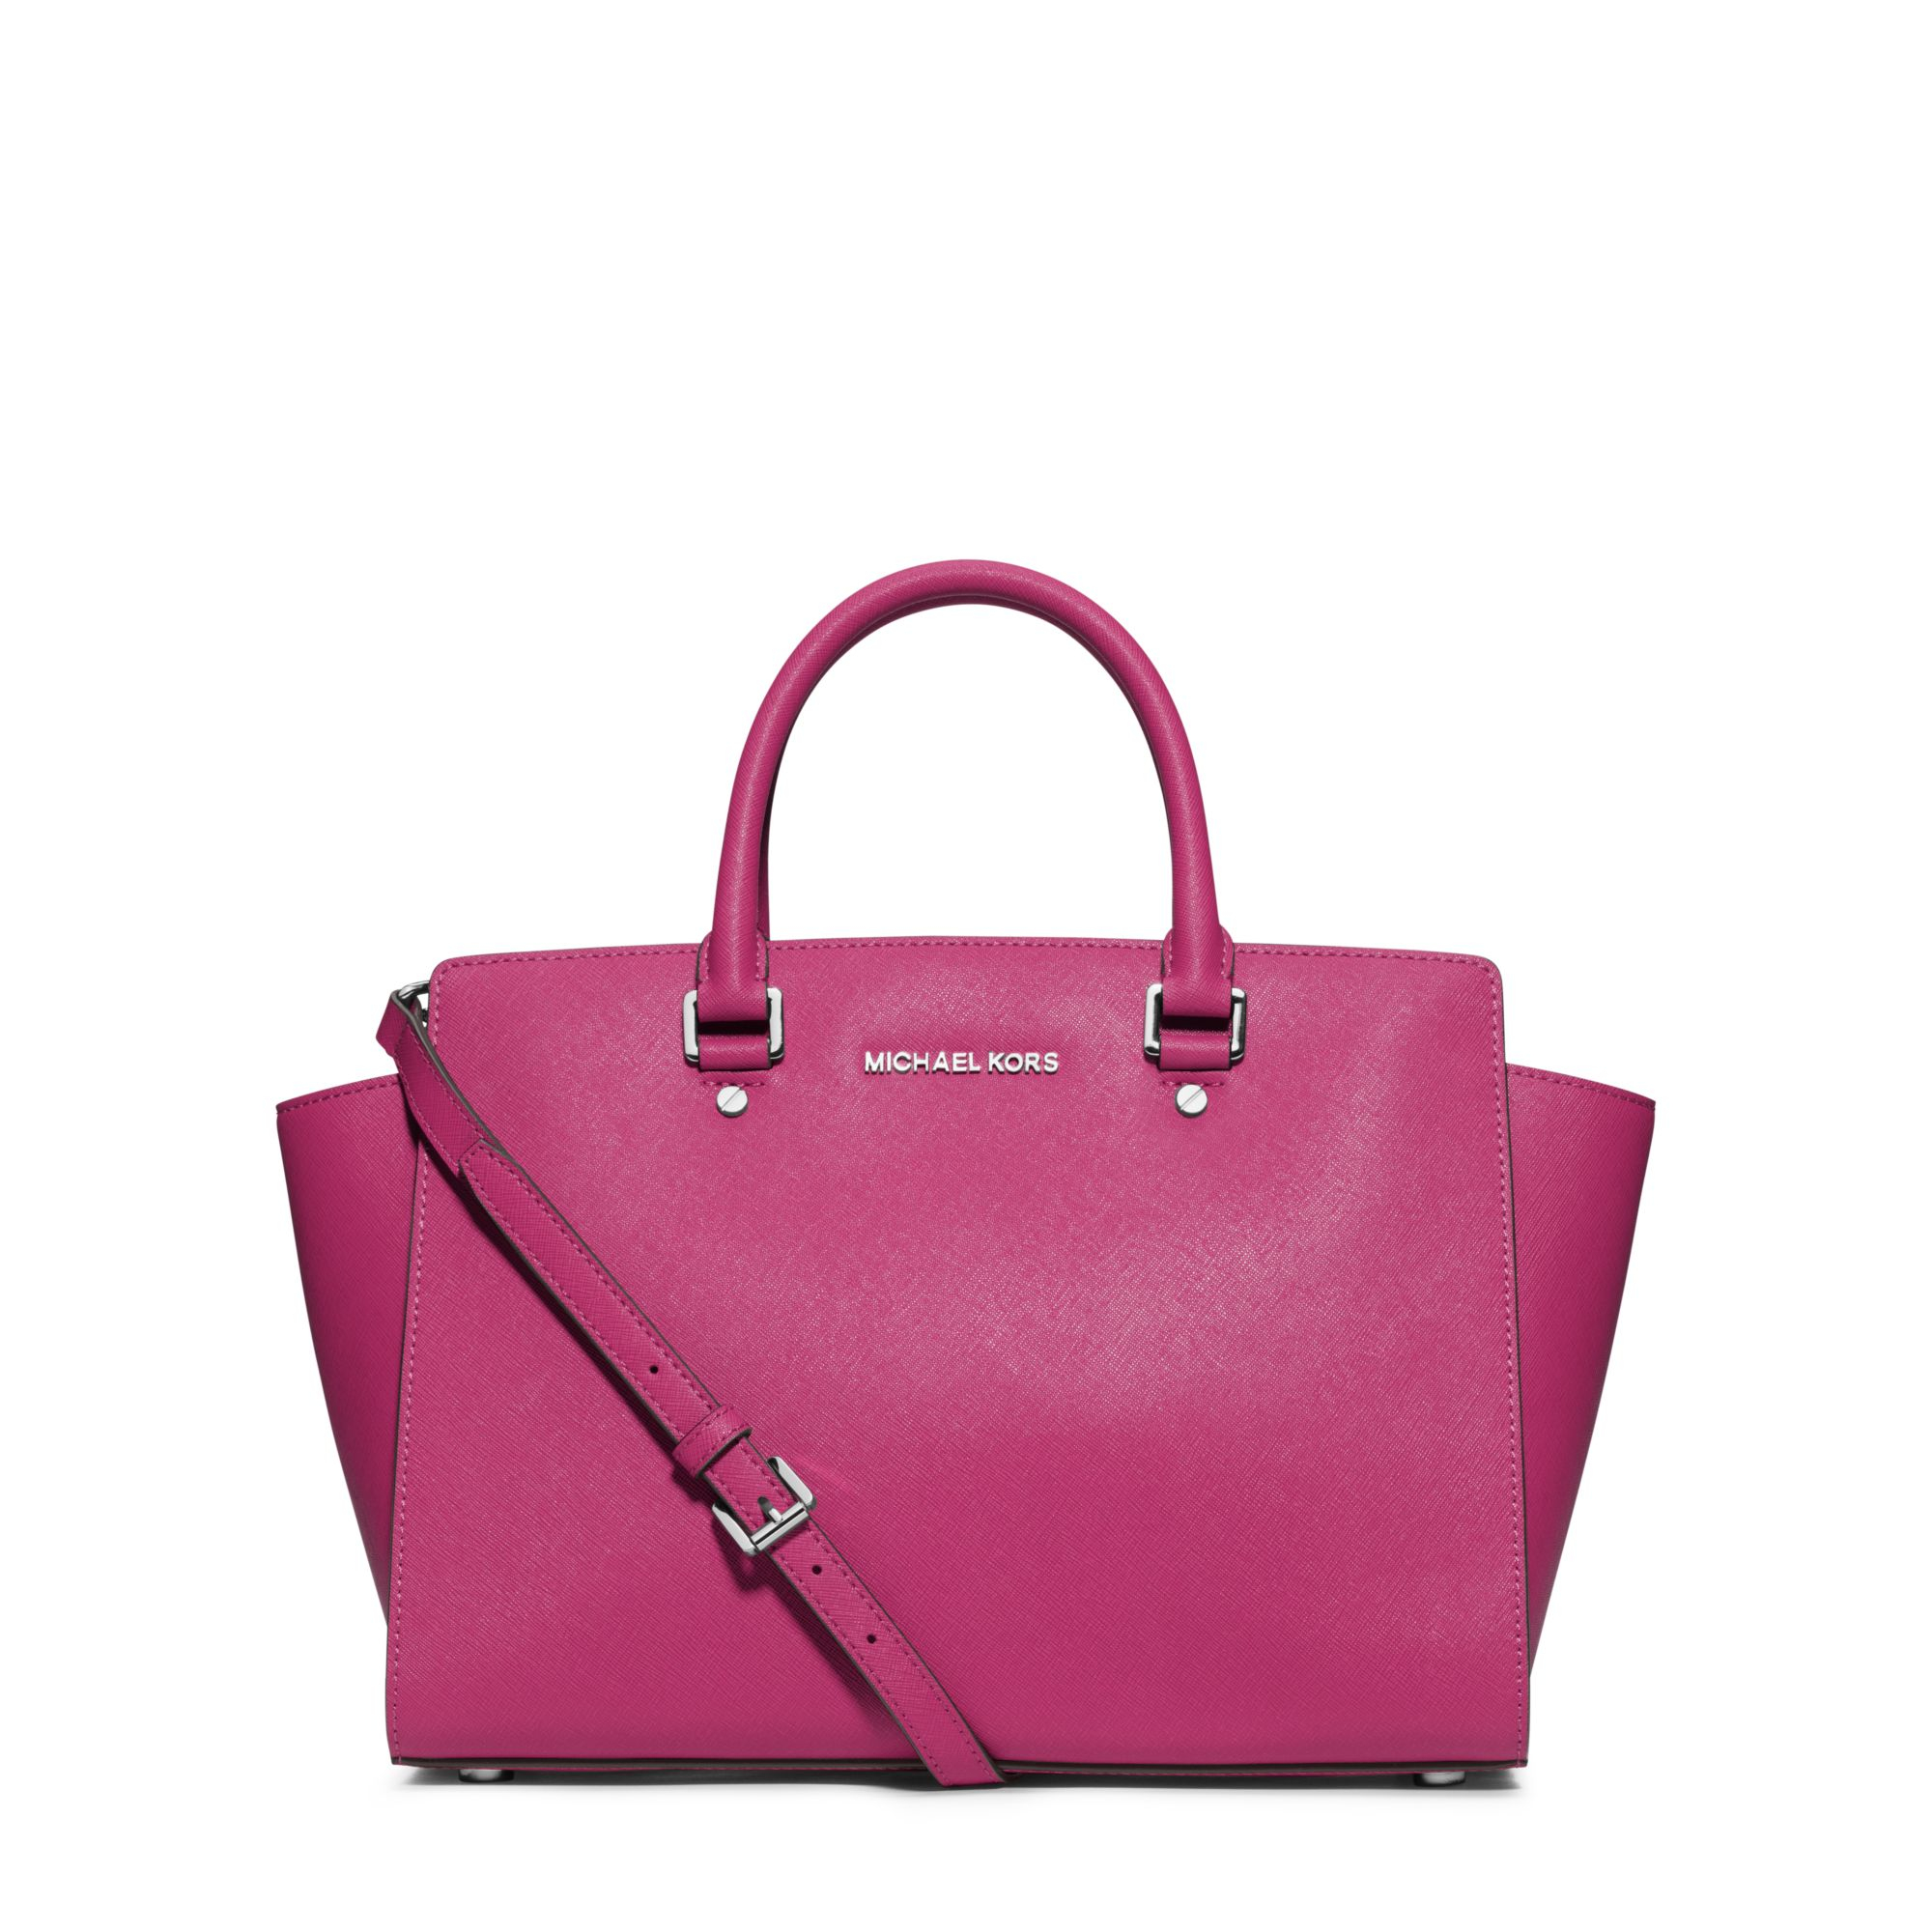 0d716225fbdb Lyst - Michael Kors Selma Large Saffiano Leather Satchel in Pink